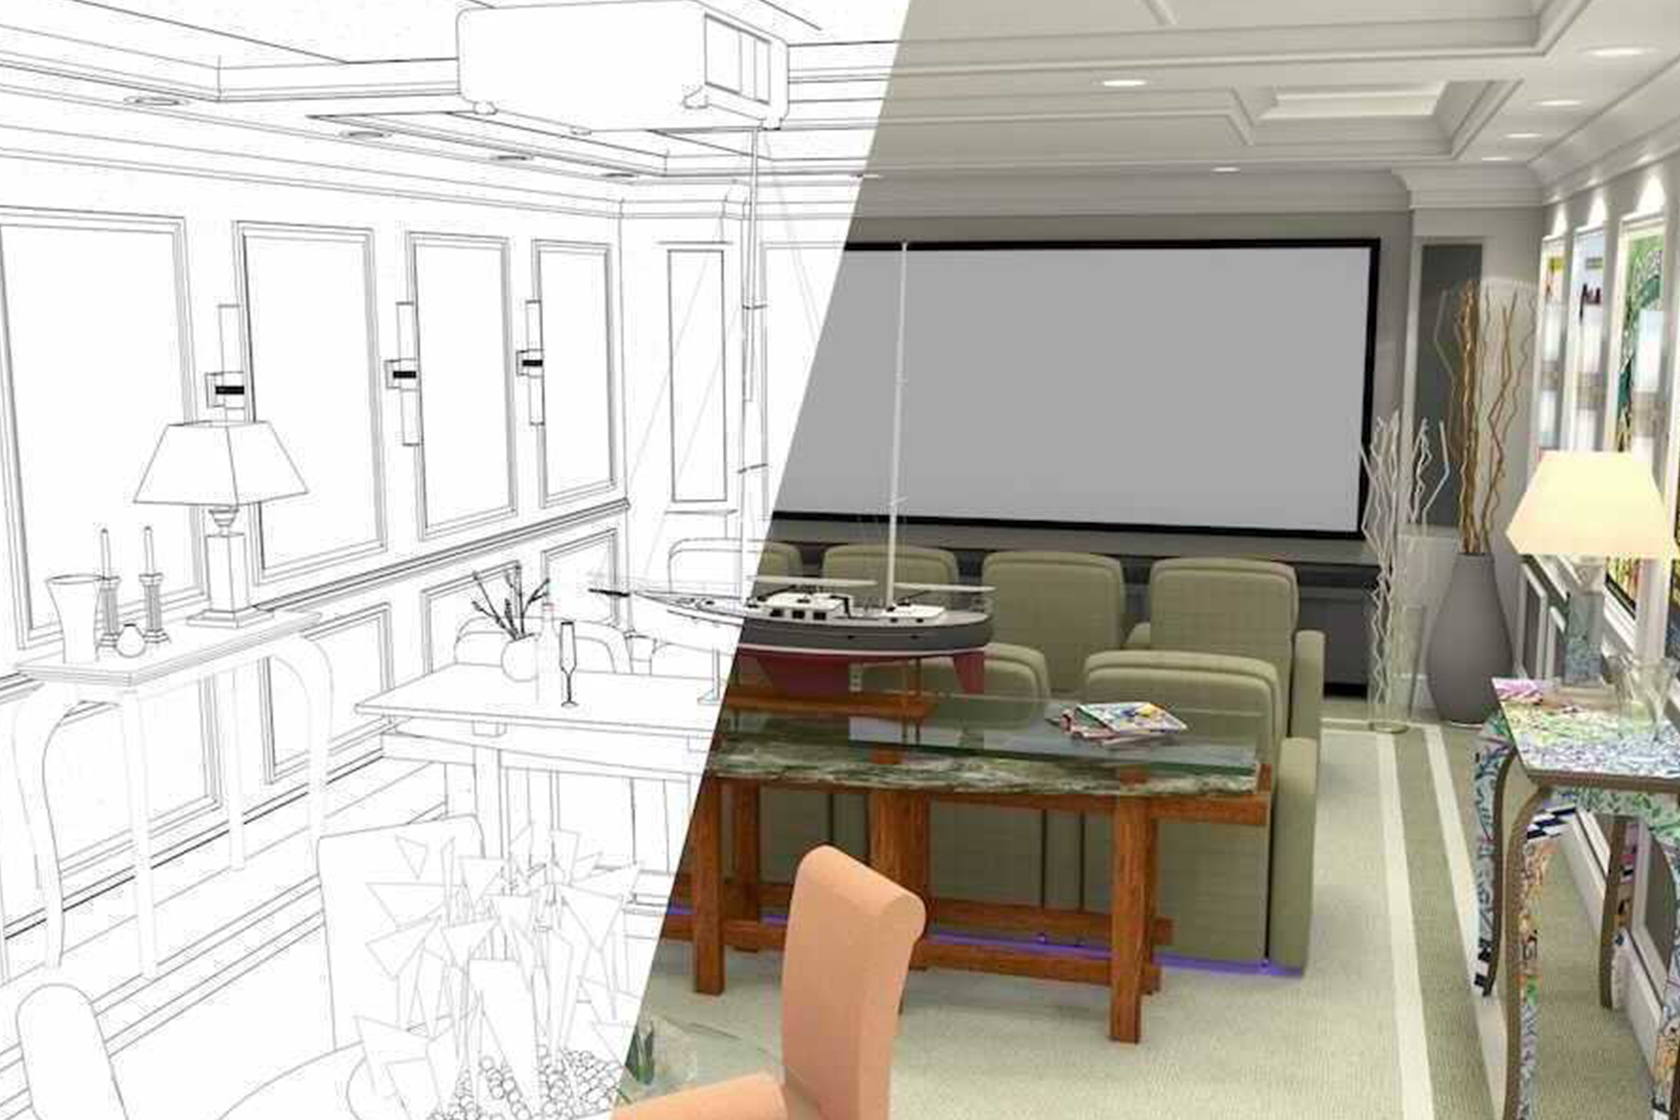 5427-2103-webinar-bldg-may-residential-interior-drawings-home-theater-rise-cover-image-1680x1120